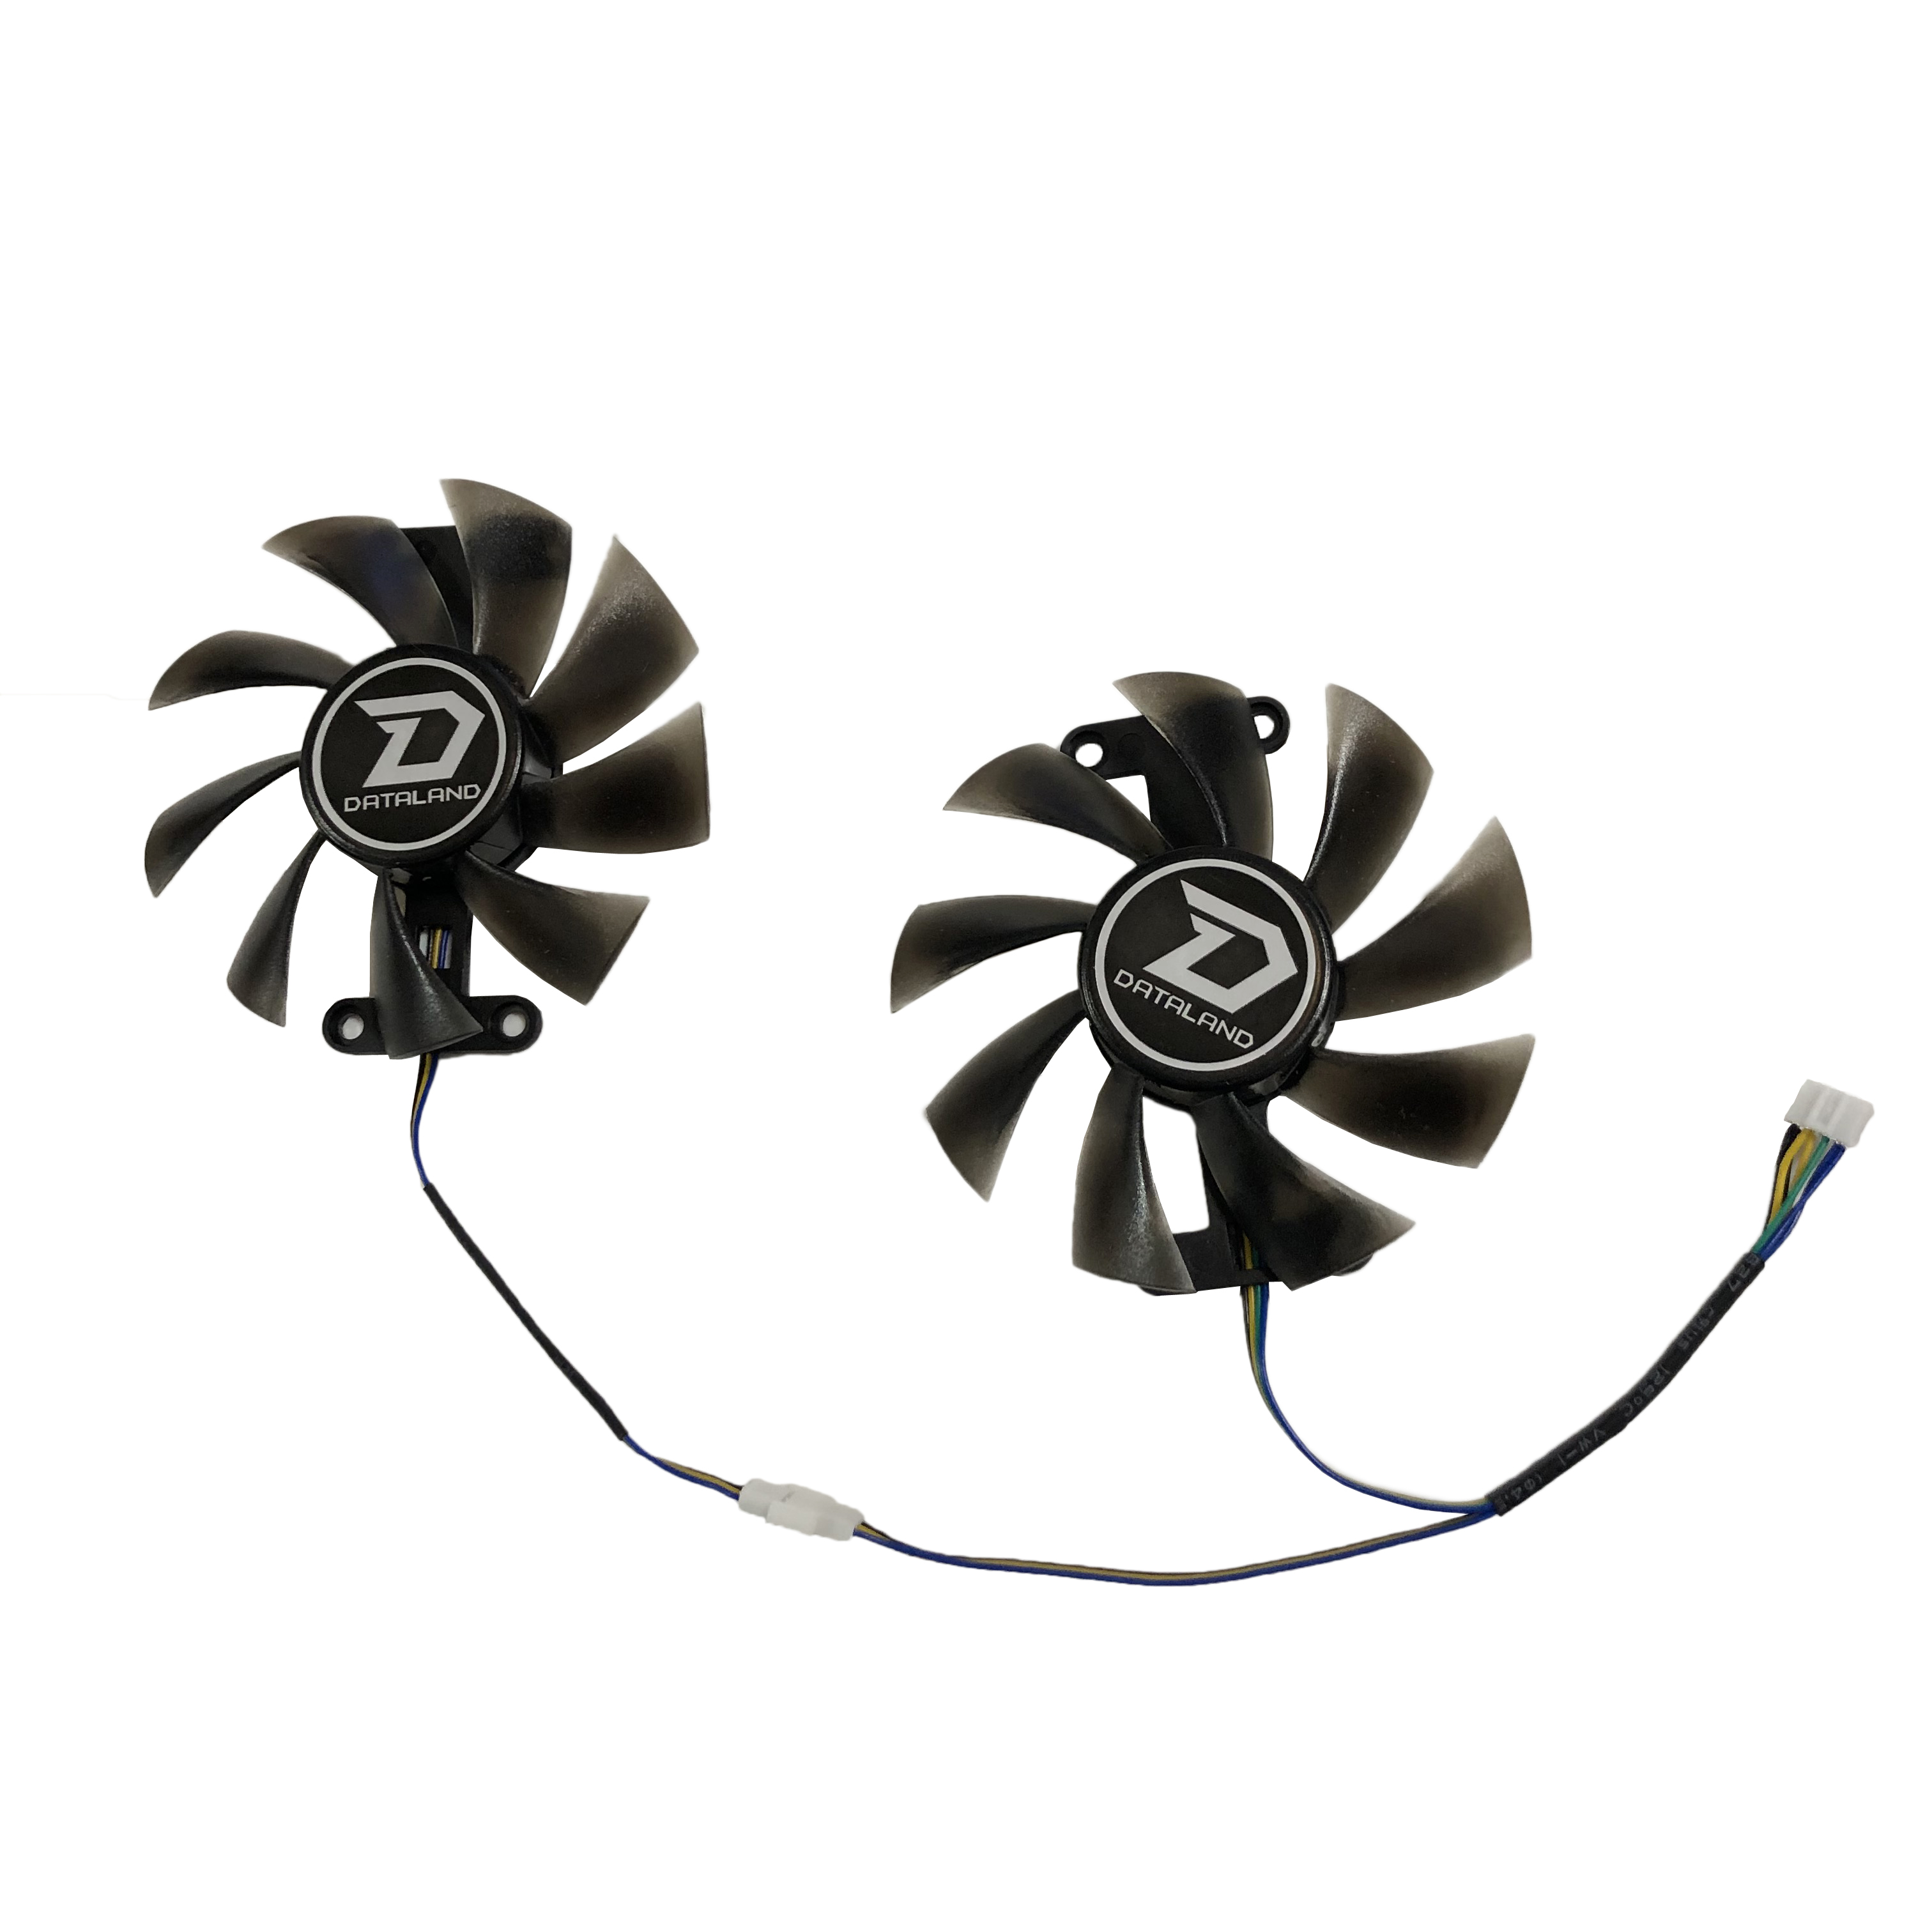 2Pcs/set PLA09215B12H PowerColor Red Devil RX 480 470 580 GPU Cooler Fan For Red Dragon AX RX470 RX480 RX580 Video Cards Cooling